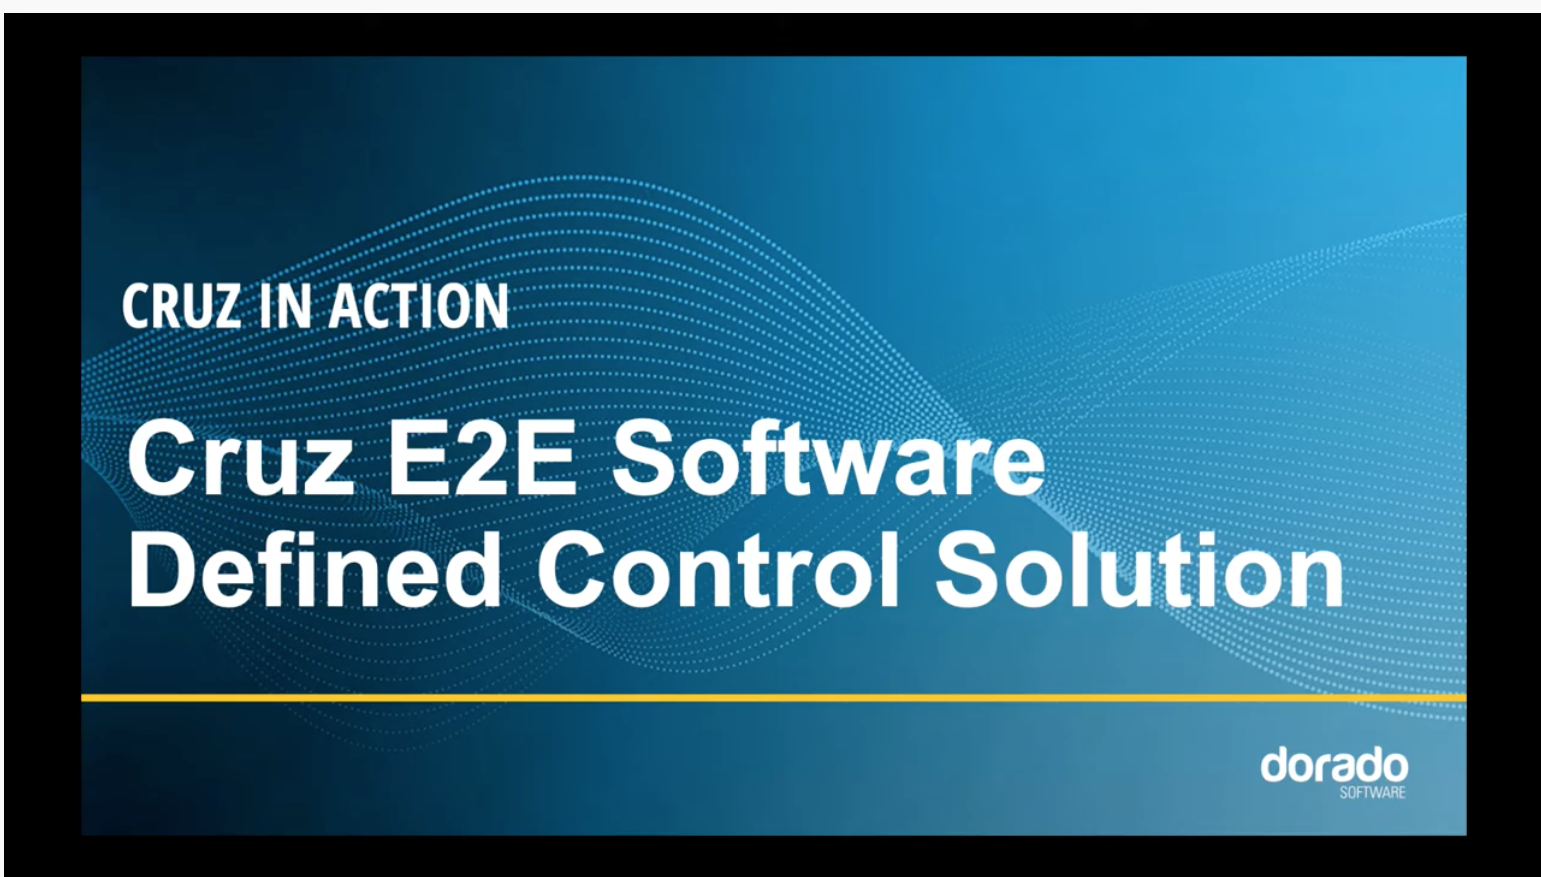 Cruz in Action: E2E SD Control